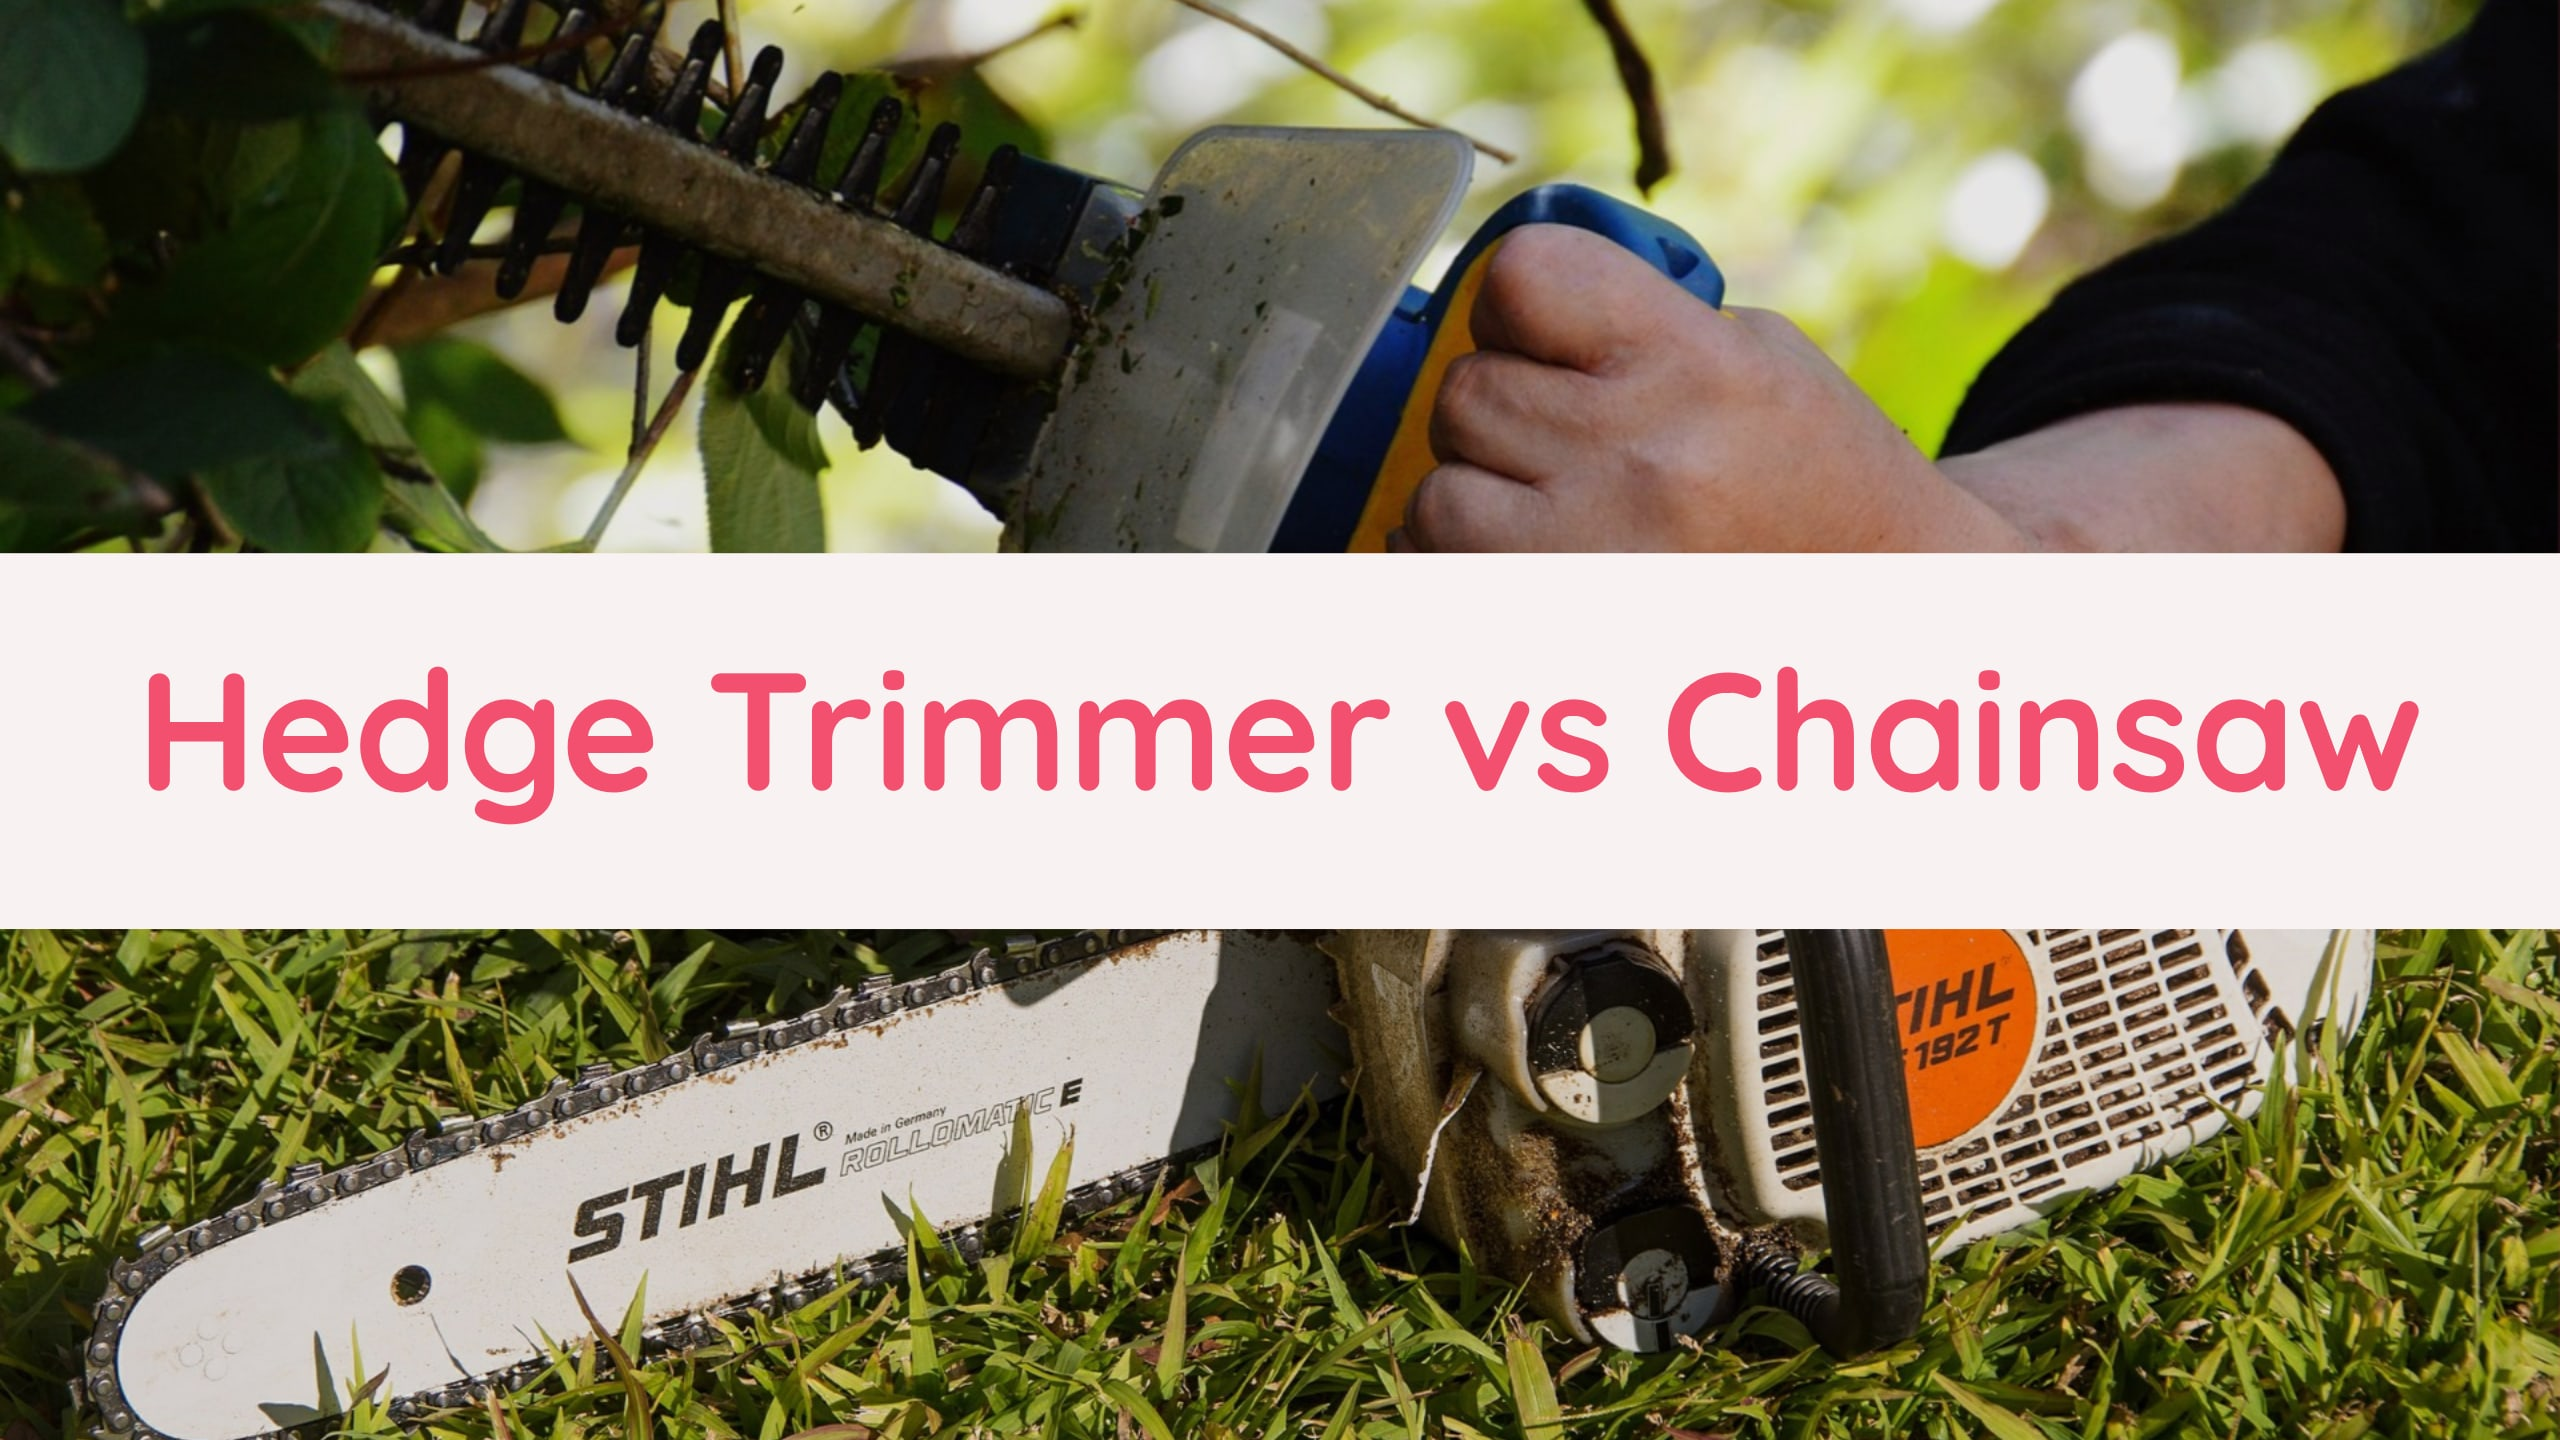 Hedge trimmer vs. Chainsaw Detailed Comparison